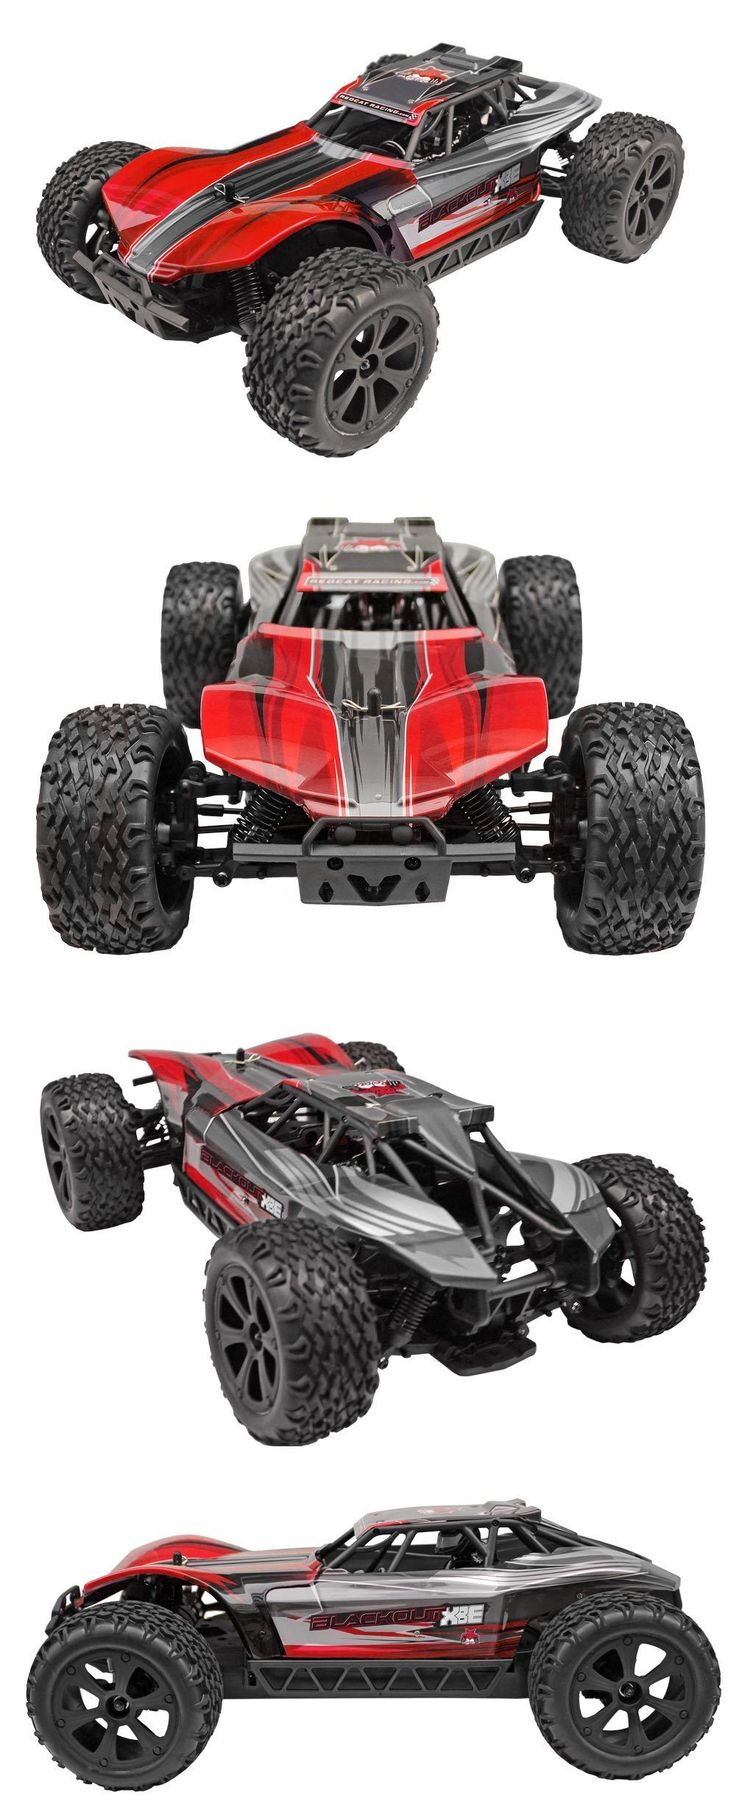 Cars Trucks and Motorcycles 182183: Redcat Blackout Xbe Pro 1 10 Scale Brushless Electric 2.4 Ghz Radio Rc Buggy Red -> BUY IT NOW ONLY: $219.99 on eBay!